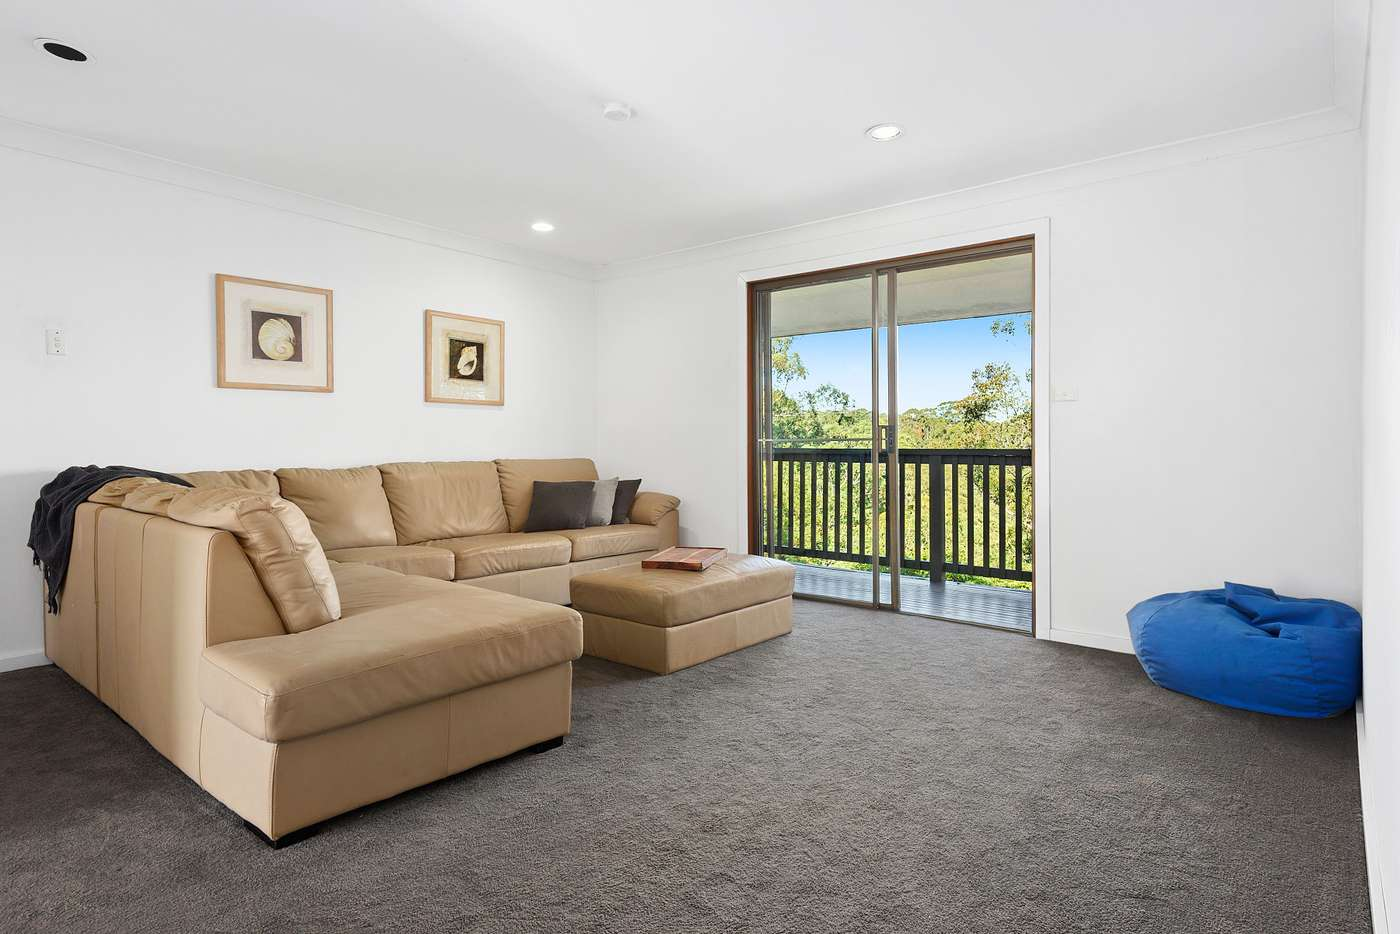 Sixth view of Homely house listing, 9 Barkala Place, Westleigh NSW 2120